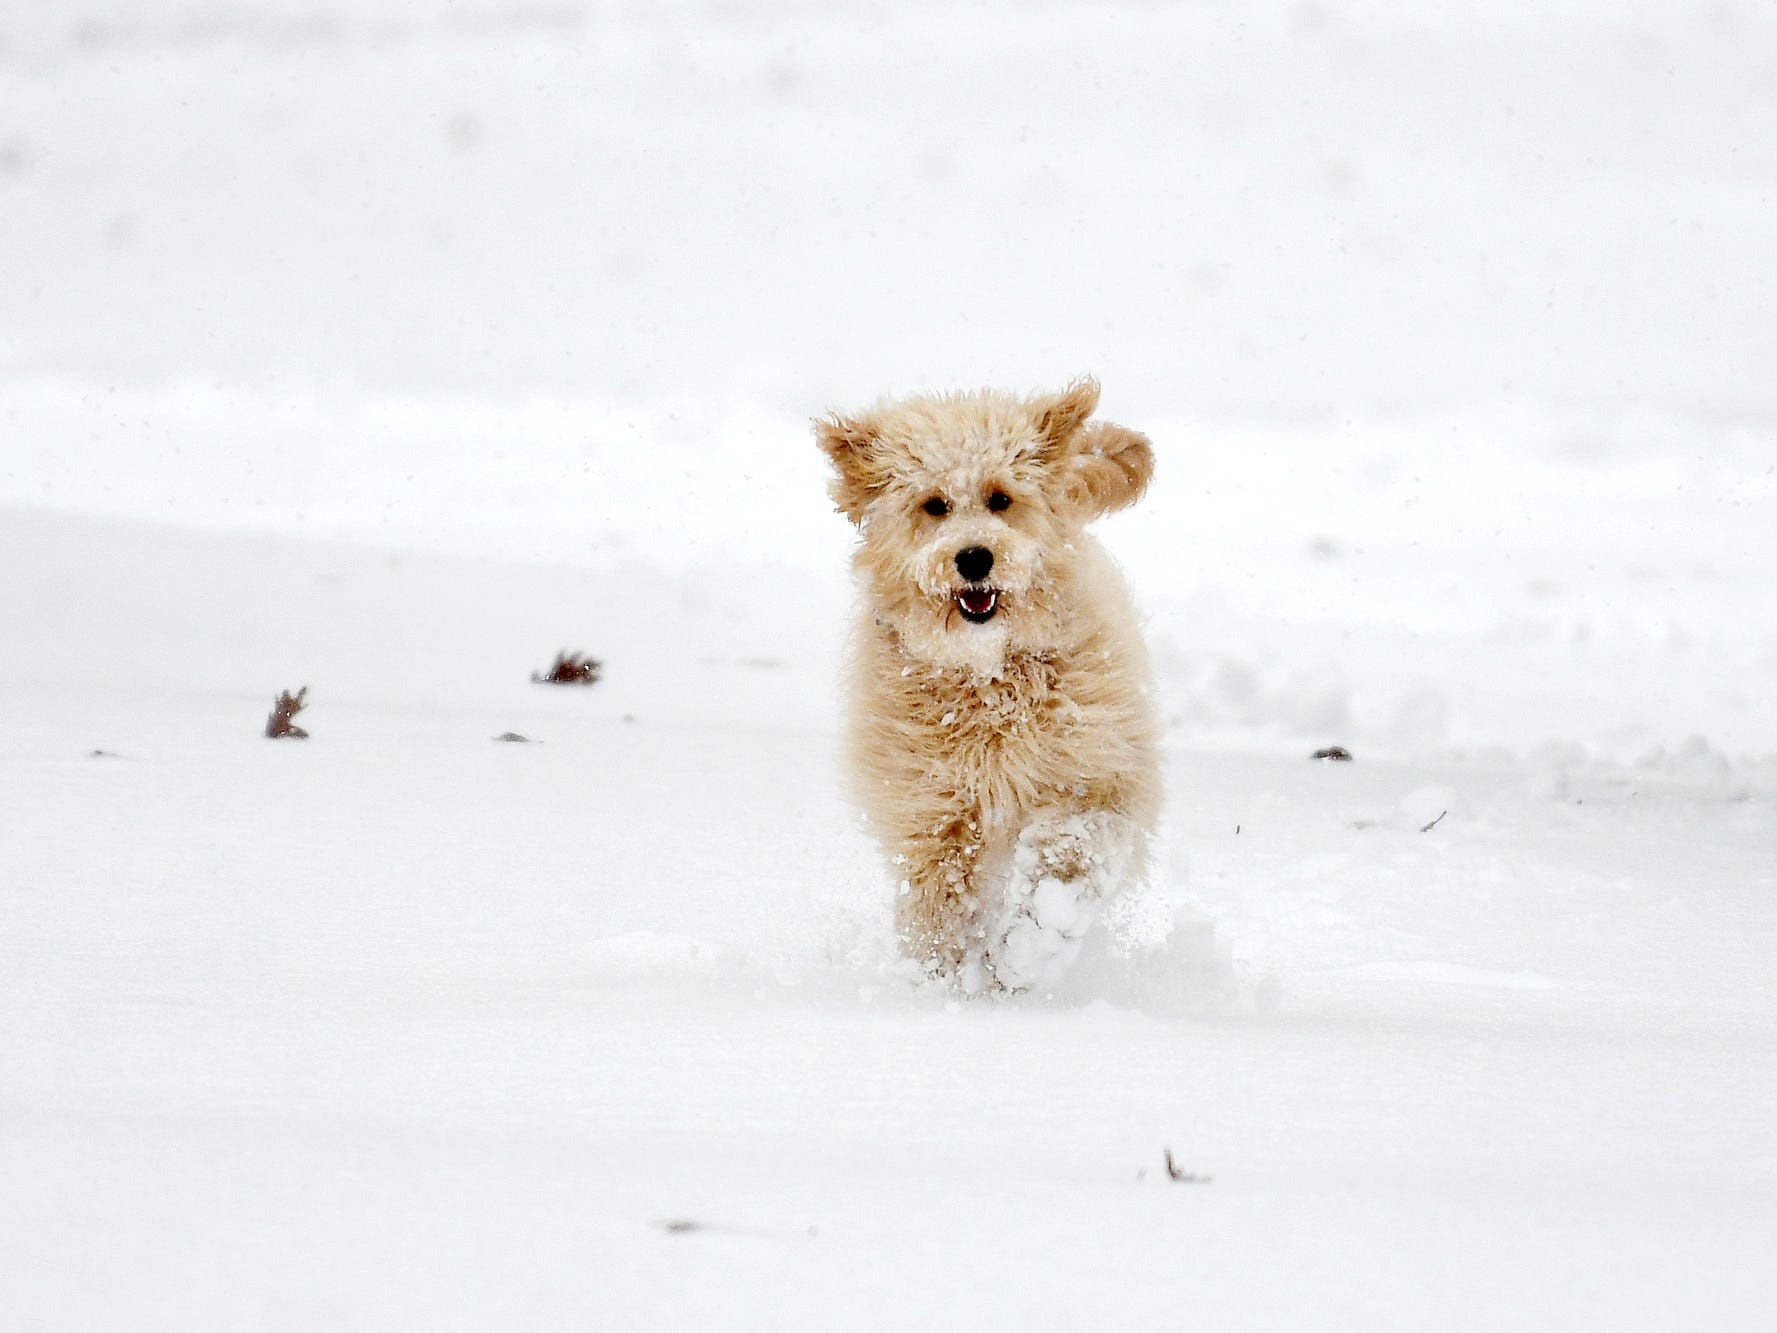 Layla, a Goldendoodle, plays in the snow while on a walk with her owner on campus.